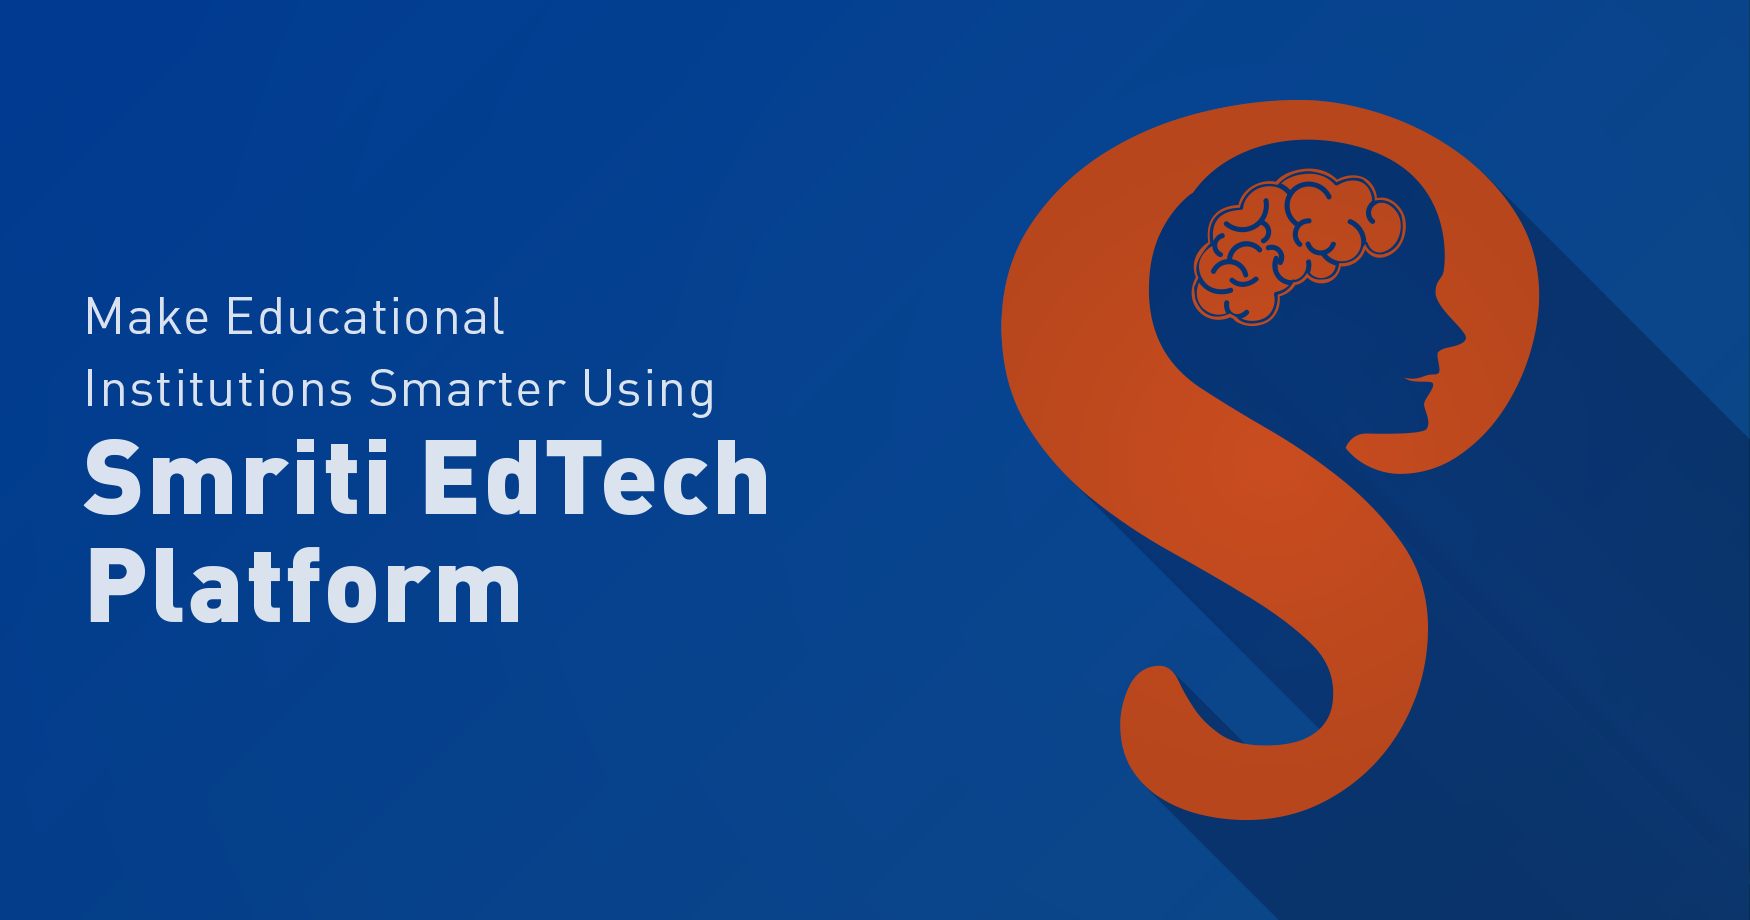 Make Educational Institutions Smarter using Smriti EdTech Platform